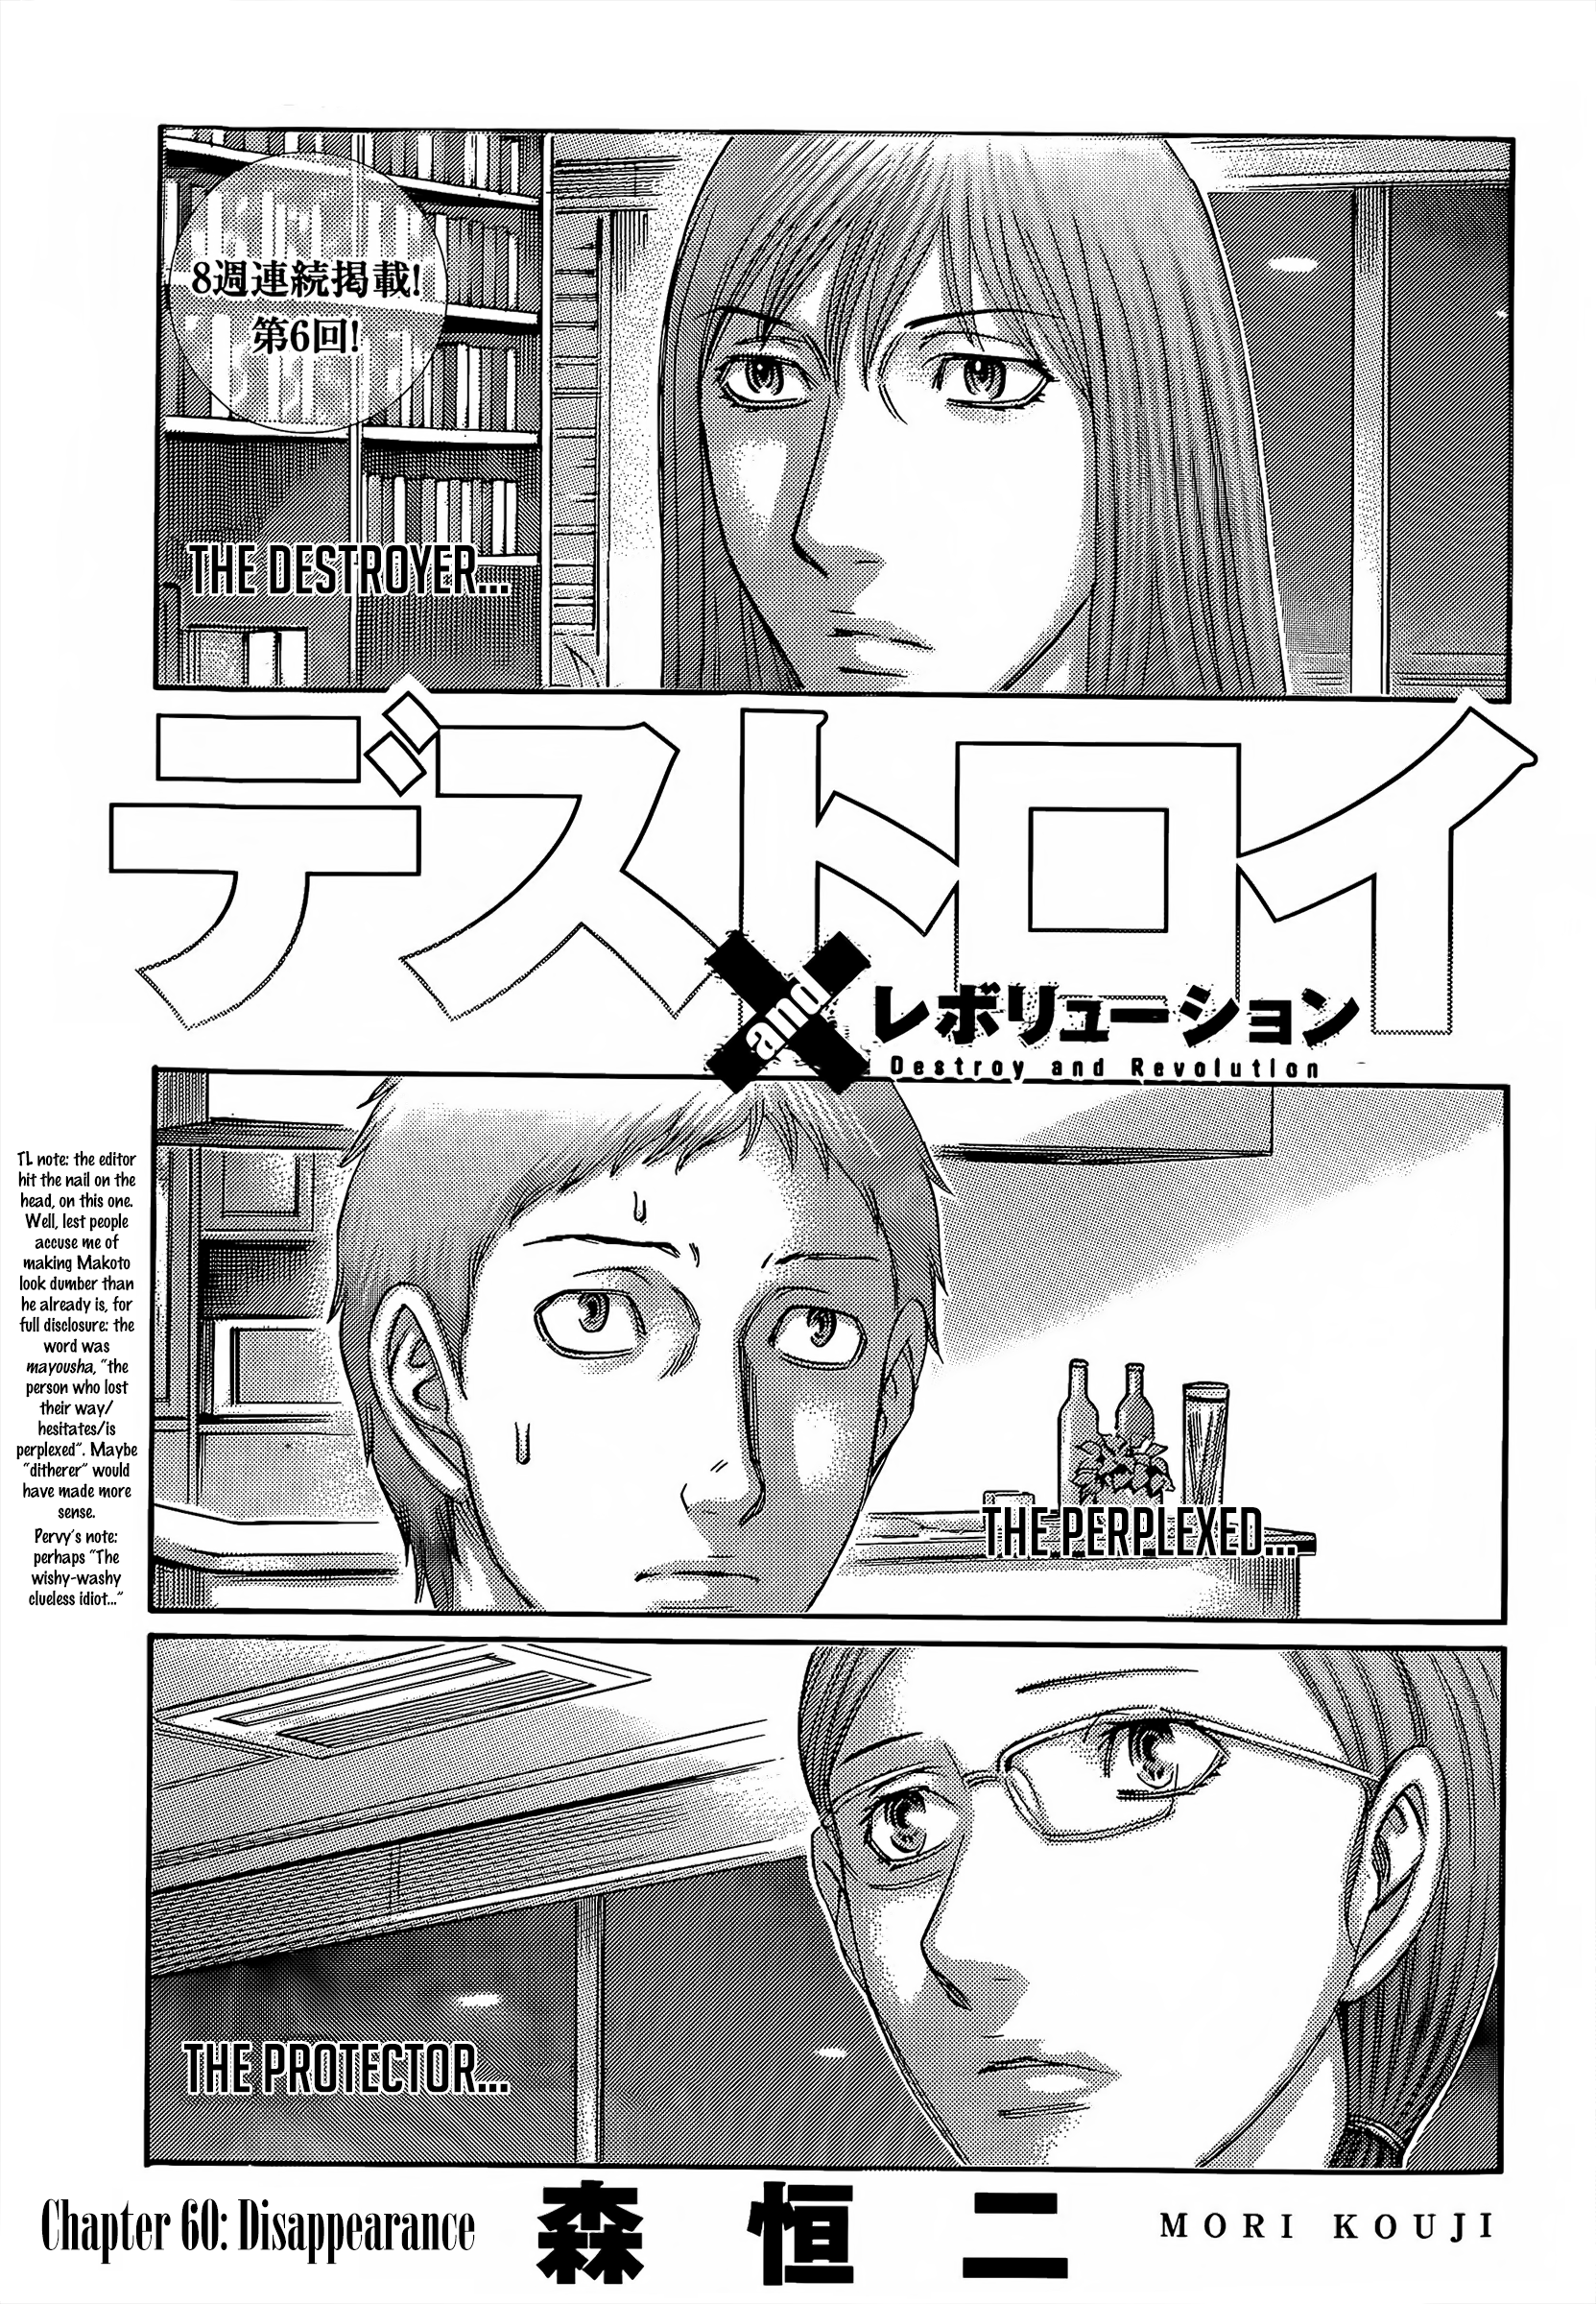 Destroy and Revolution - Chapter 61